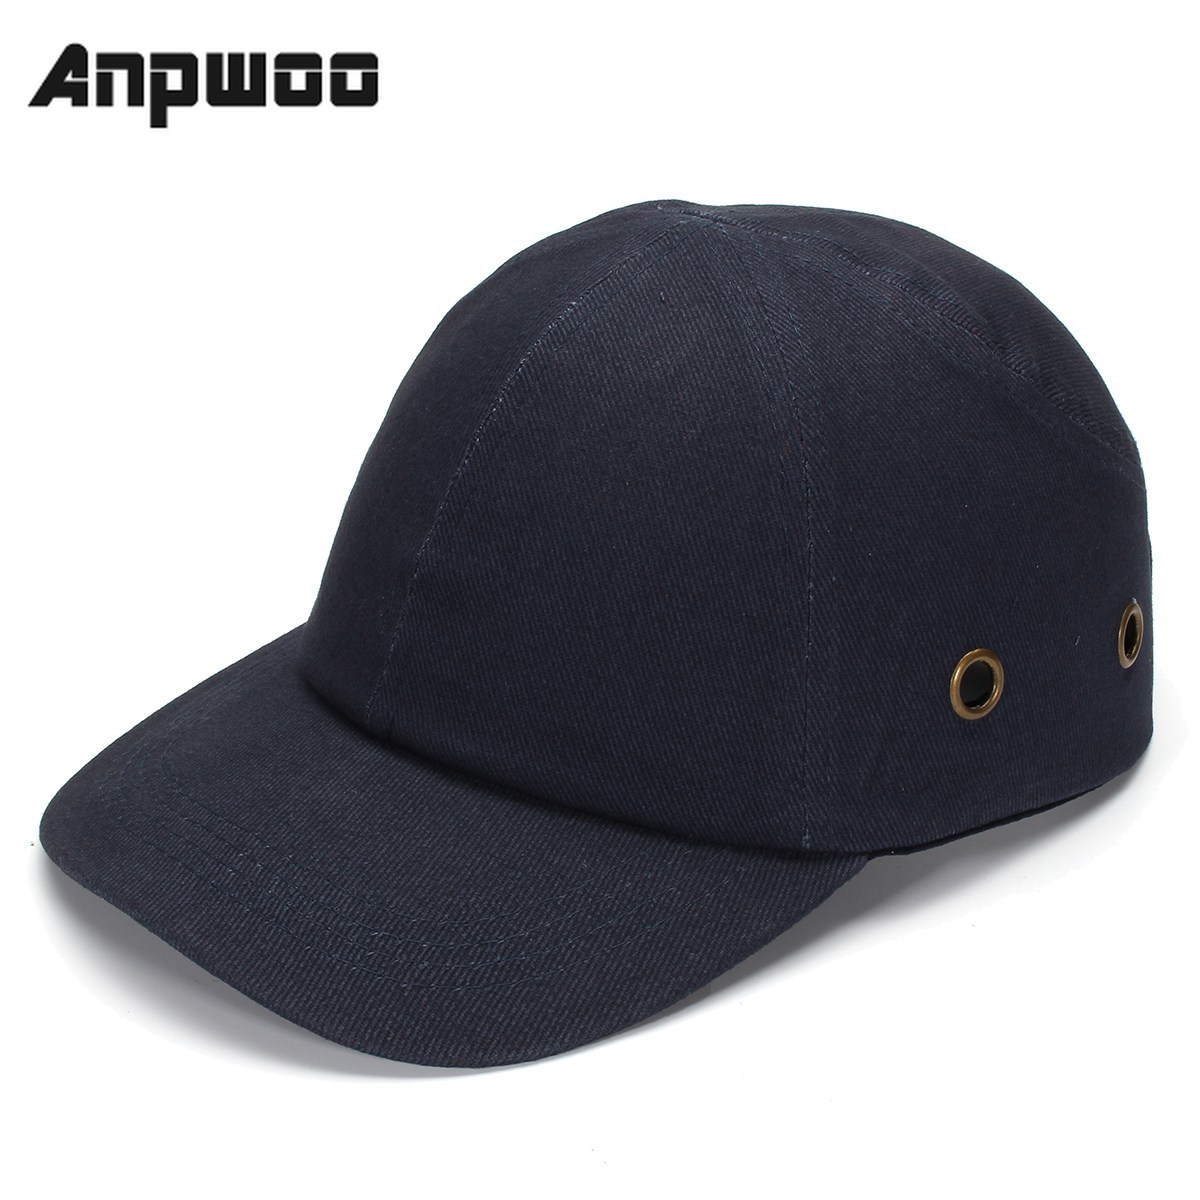 ANPWOO Blue Baseball Bump Caps - Lightweight Safety Hard Hat Head Protection Caps Workplace Safety Helmet